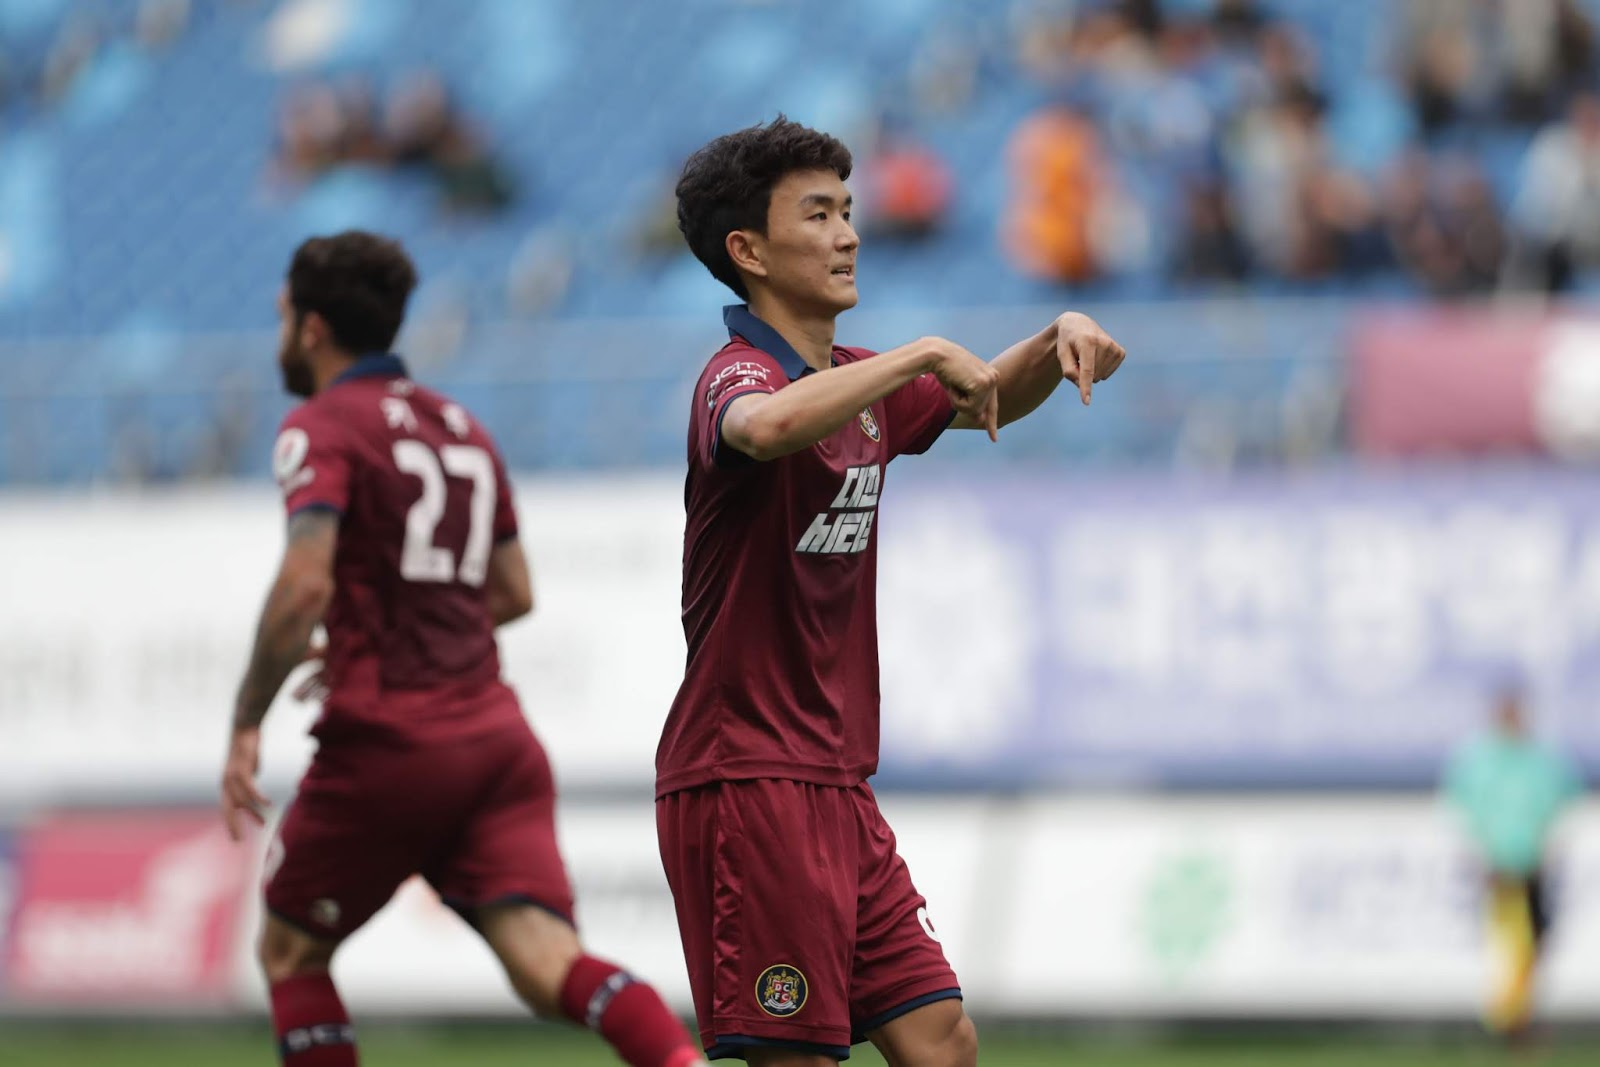 Preview: Daejeon Citizen vs Bucheon FC 1995 K League 2